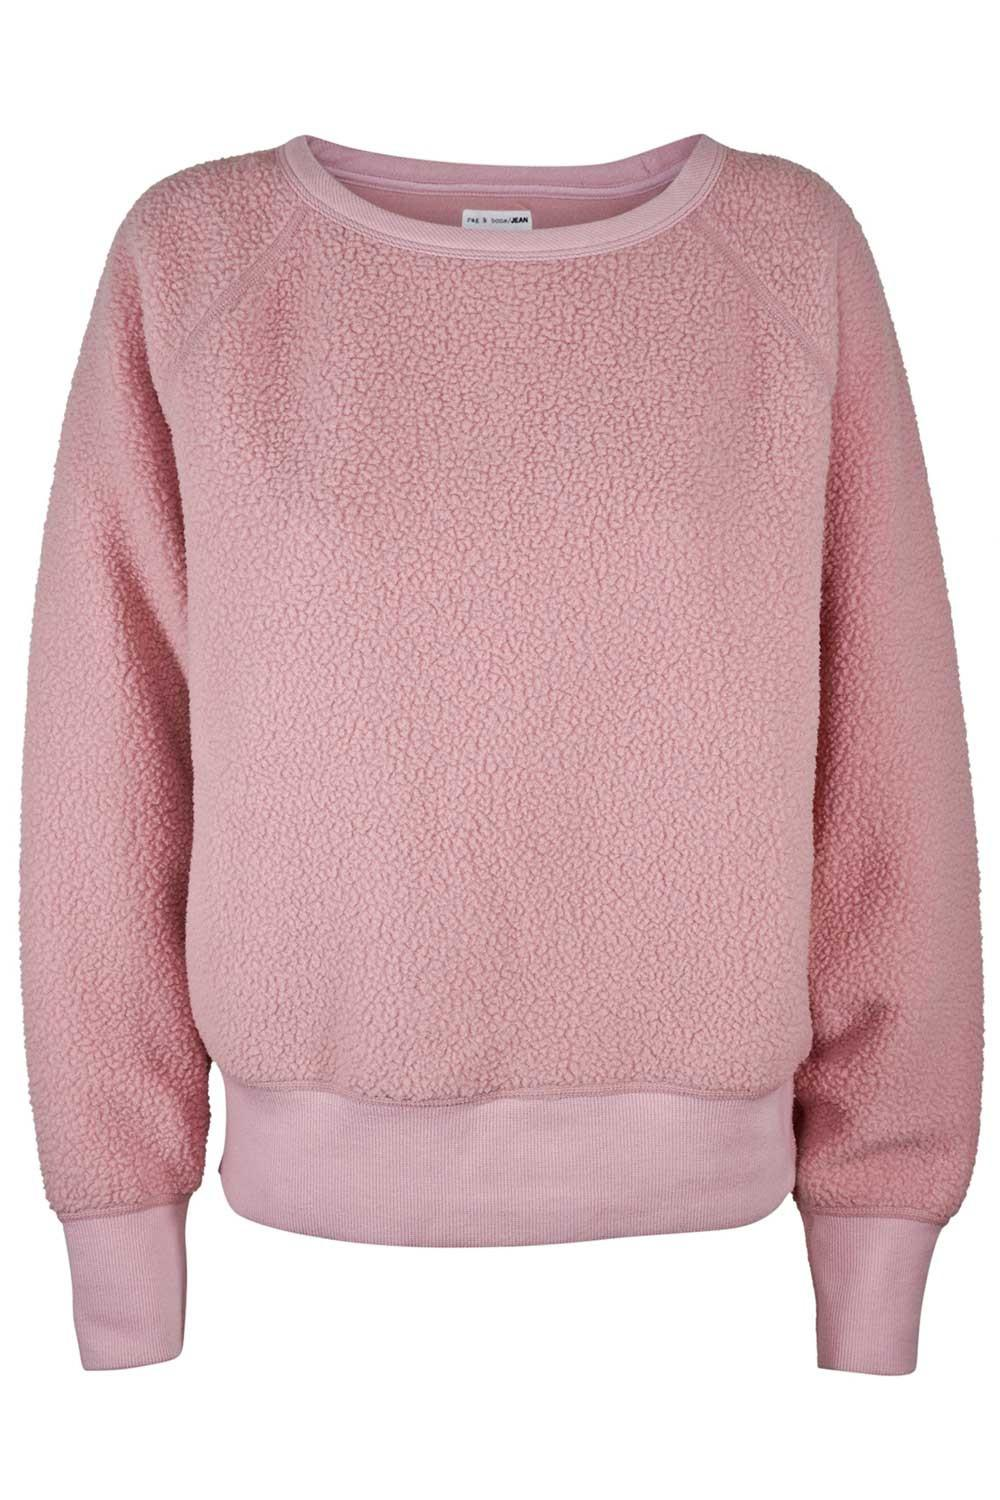 Rag & bone Sweater - Sherpa Fleece Pullover in Pink | Lyst